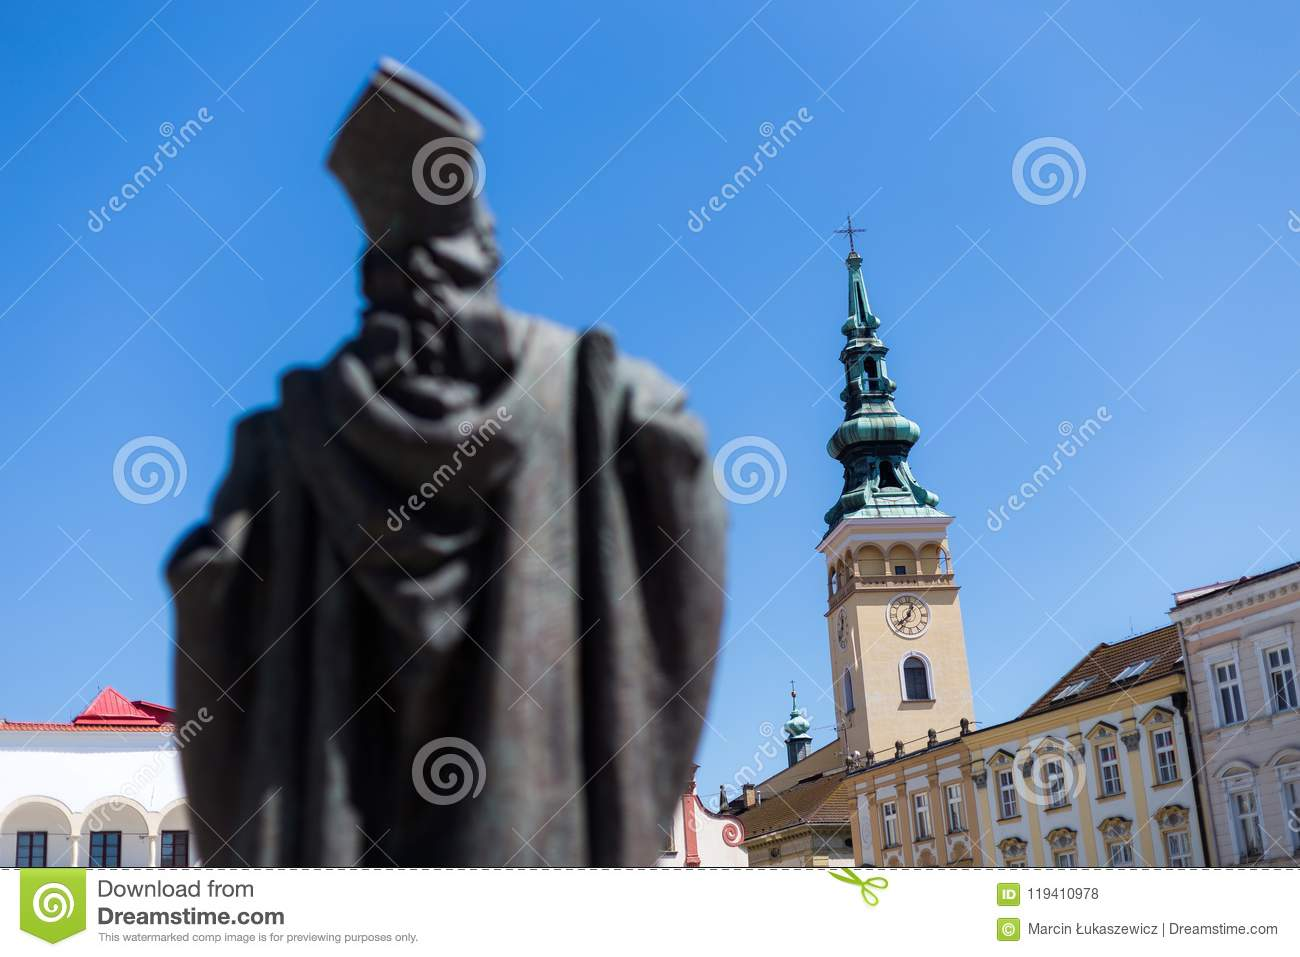 06 May 2018 Novy Jicin Czech Republic Old Market Square In With Church Of The Assumption Virgin Mary